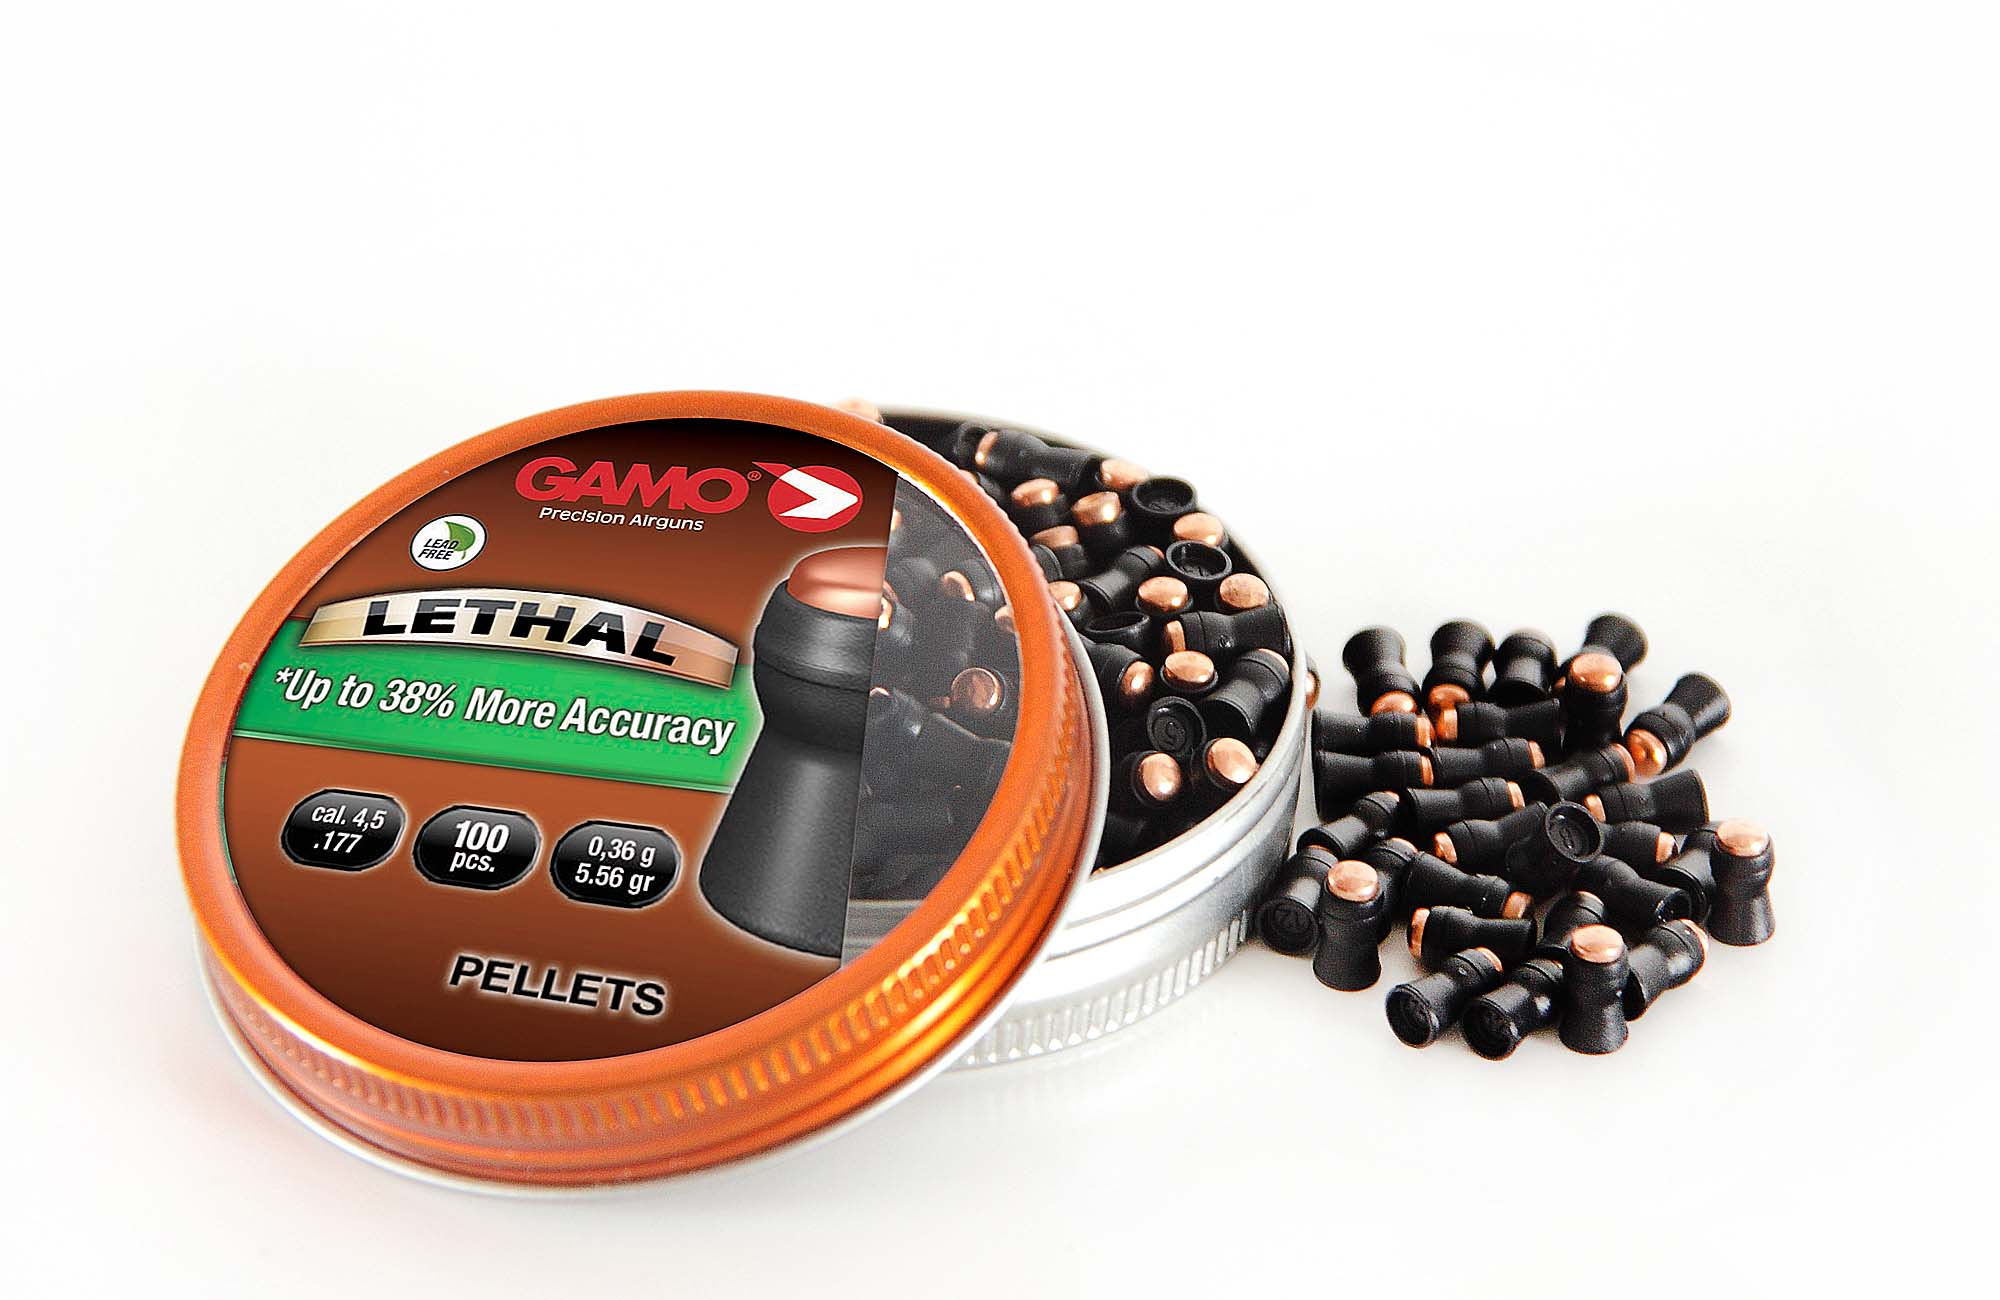 GAMO Lethal: Lead-free air rifle pellets | all4shooters